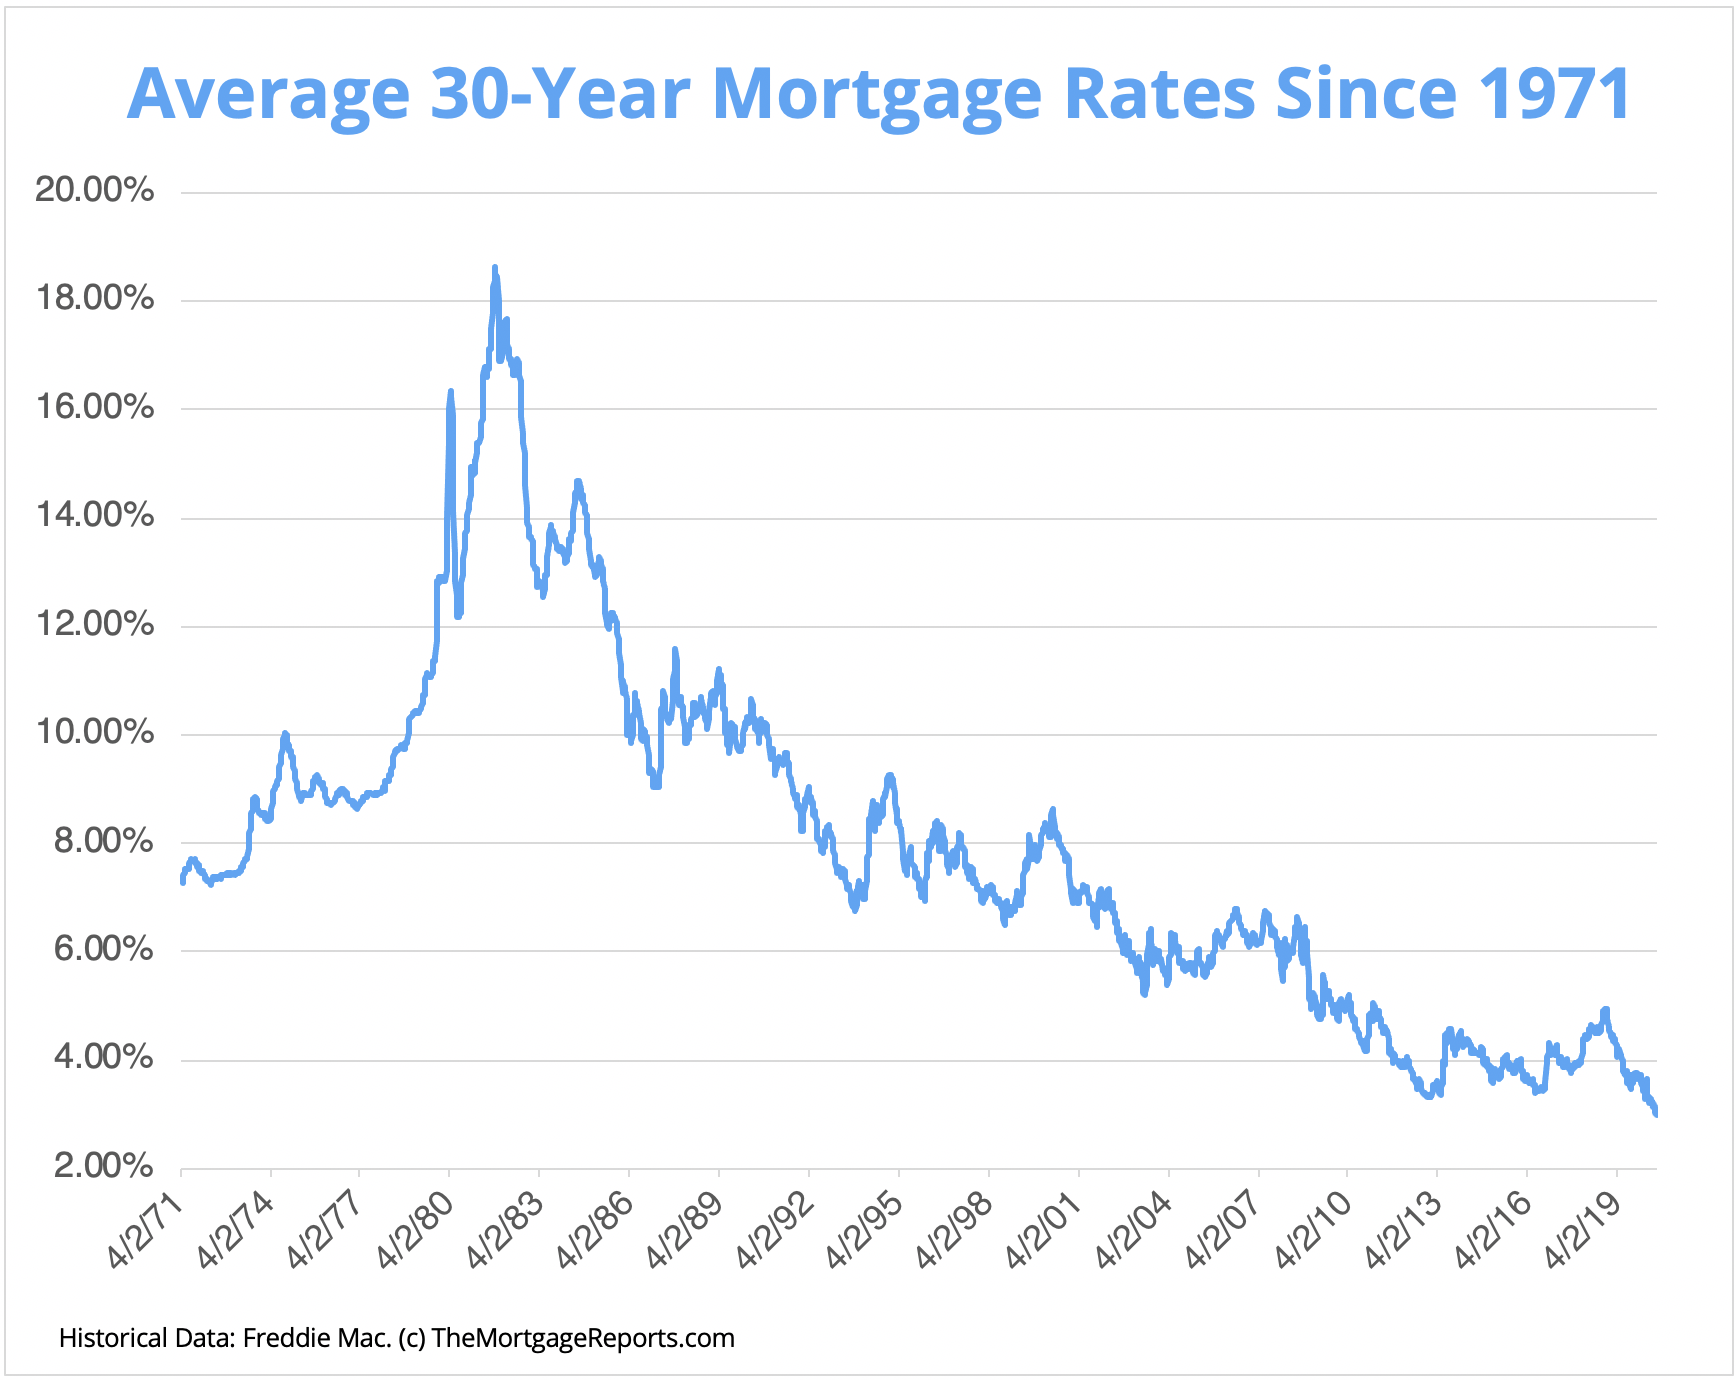 Chart shows average 30-year mortgage rates in the U.S. since 1971. Mortgage rates fell below 3% in July 2020 for the first time in nearly 50 years